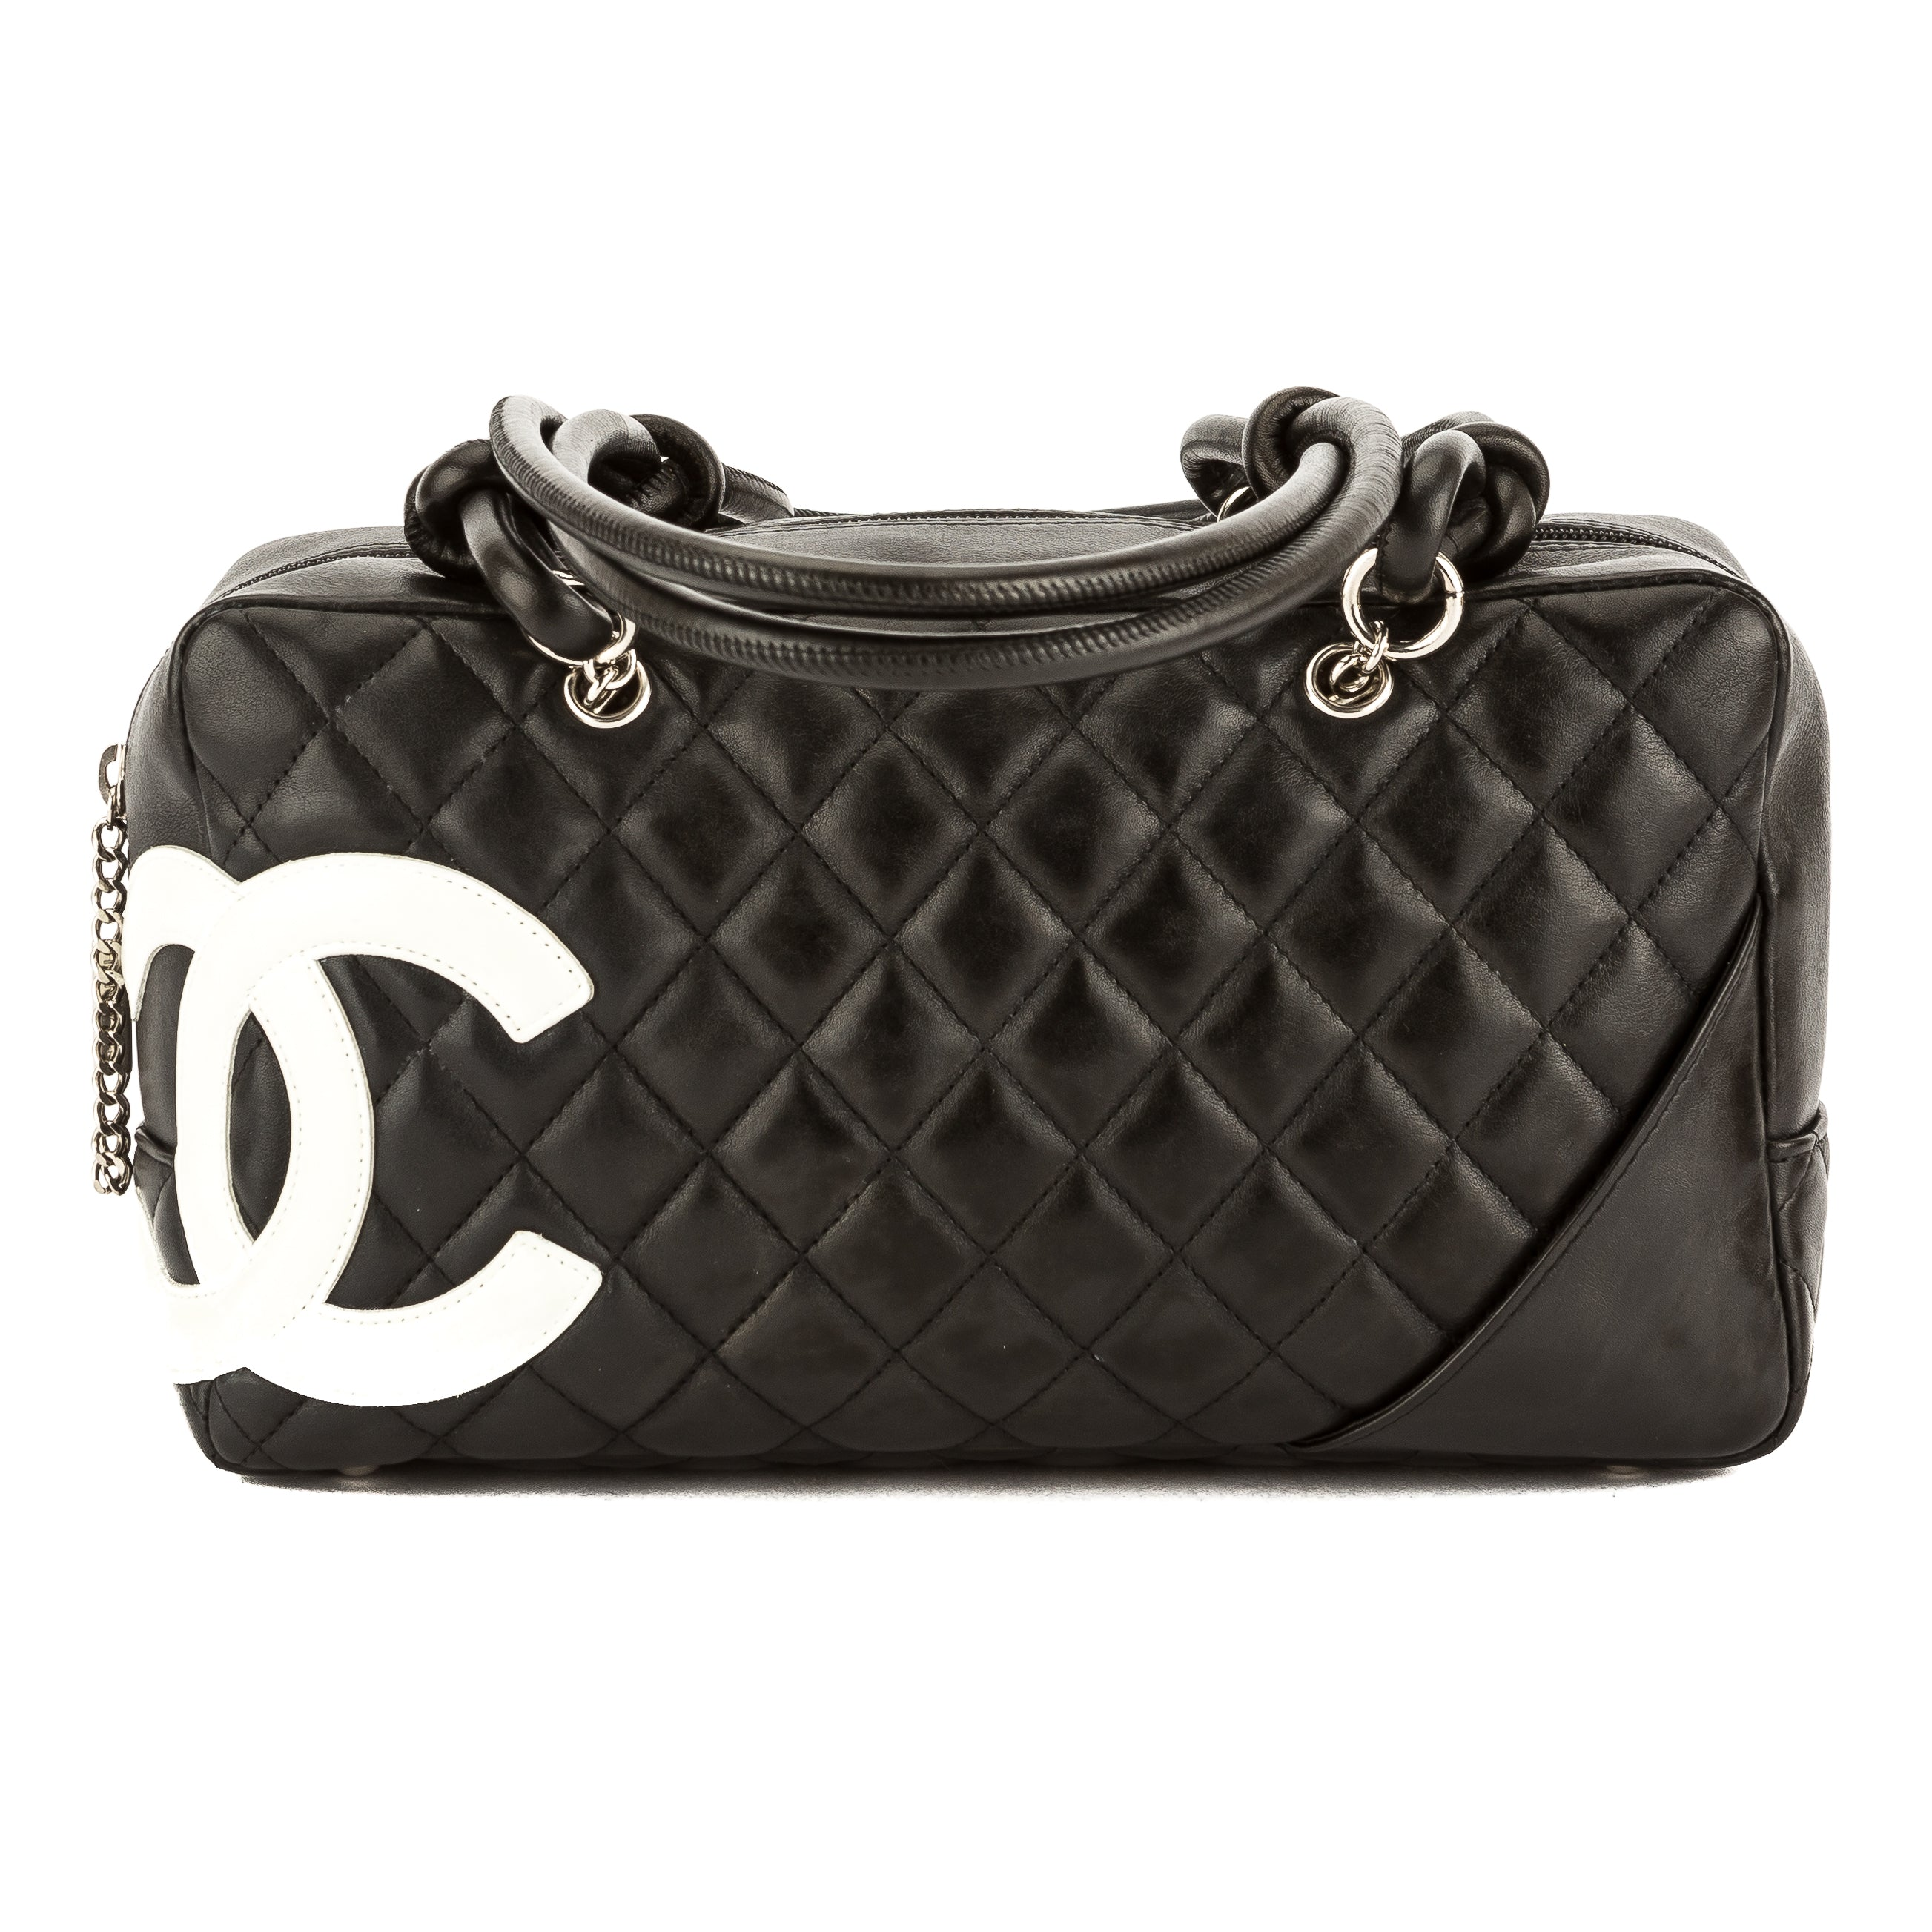 1d0c8a2d3614 Chanel Black Quilted Calfskin Leather Cambon Ligne Bowler Bag Pre Owned